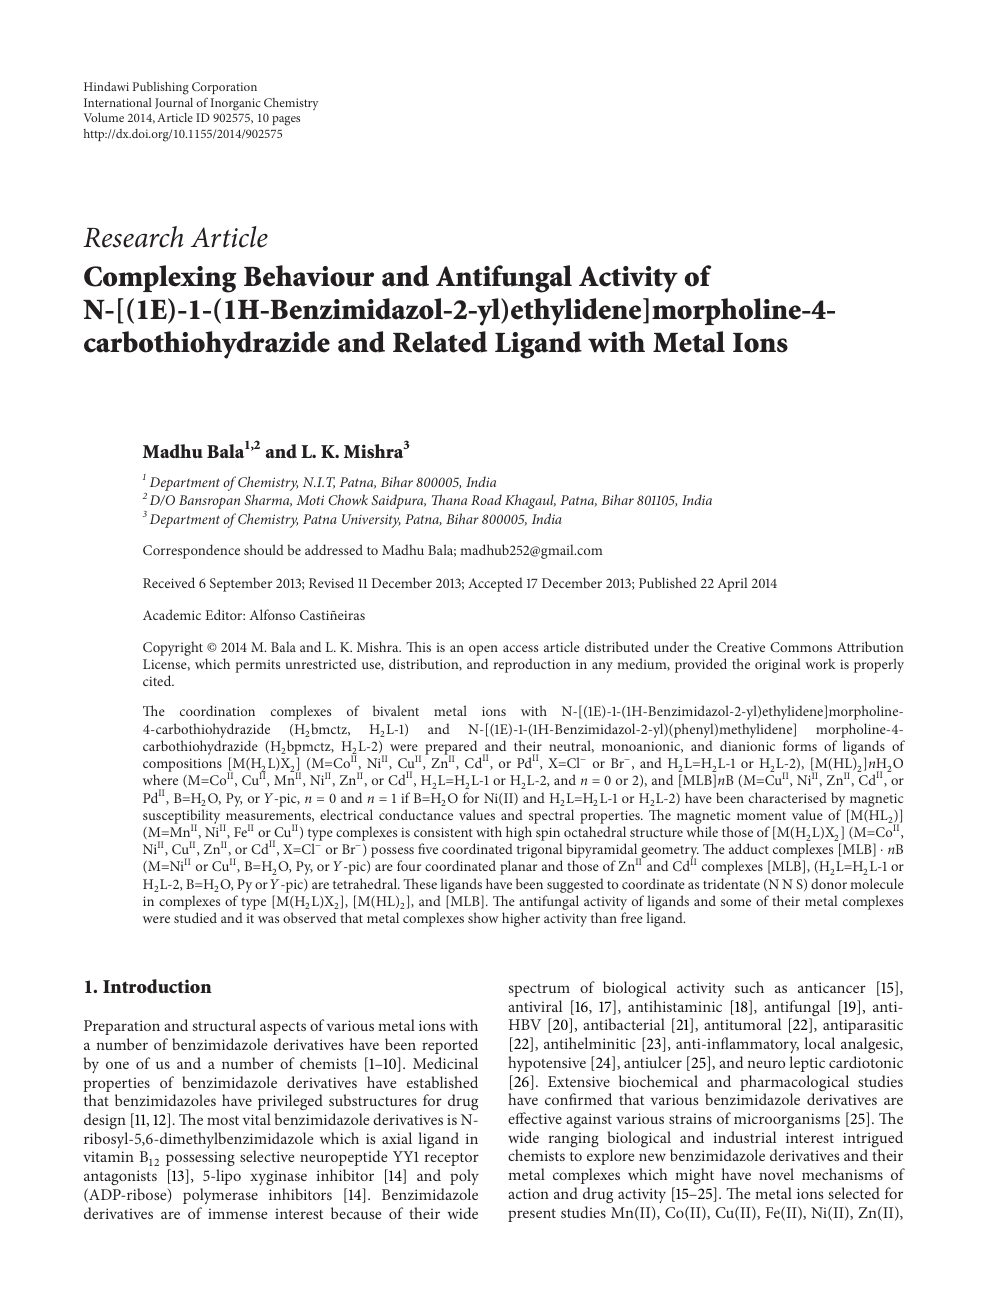 Complexing Behaviour and Antifungal Activity of N-[(1E)-1-(1H